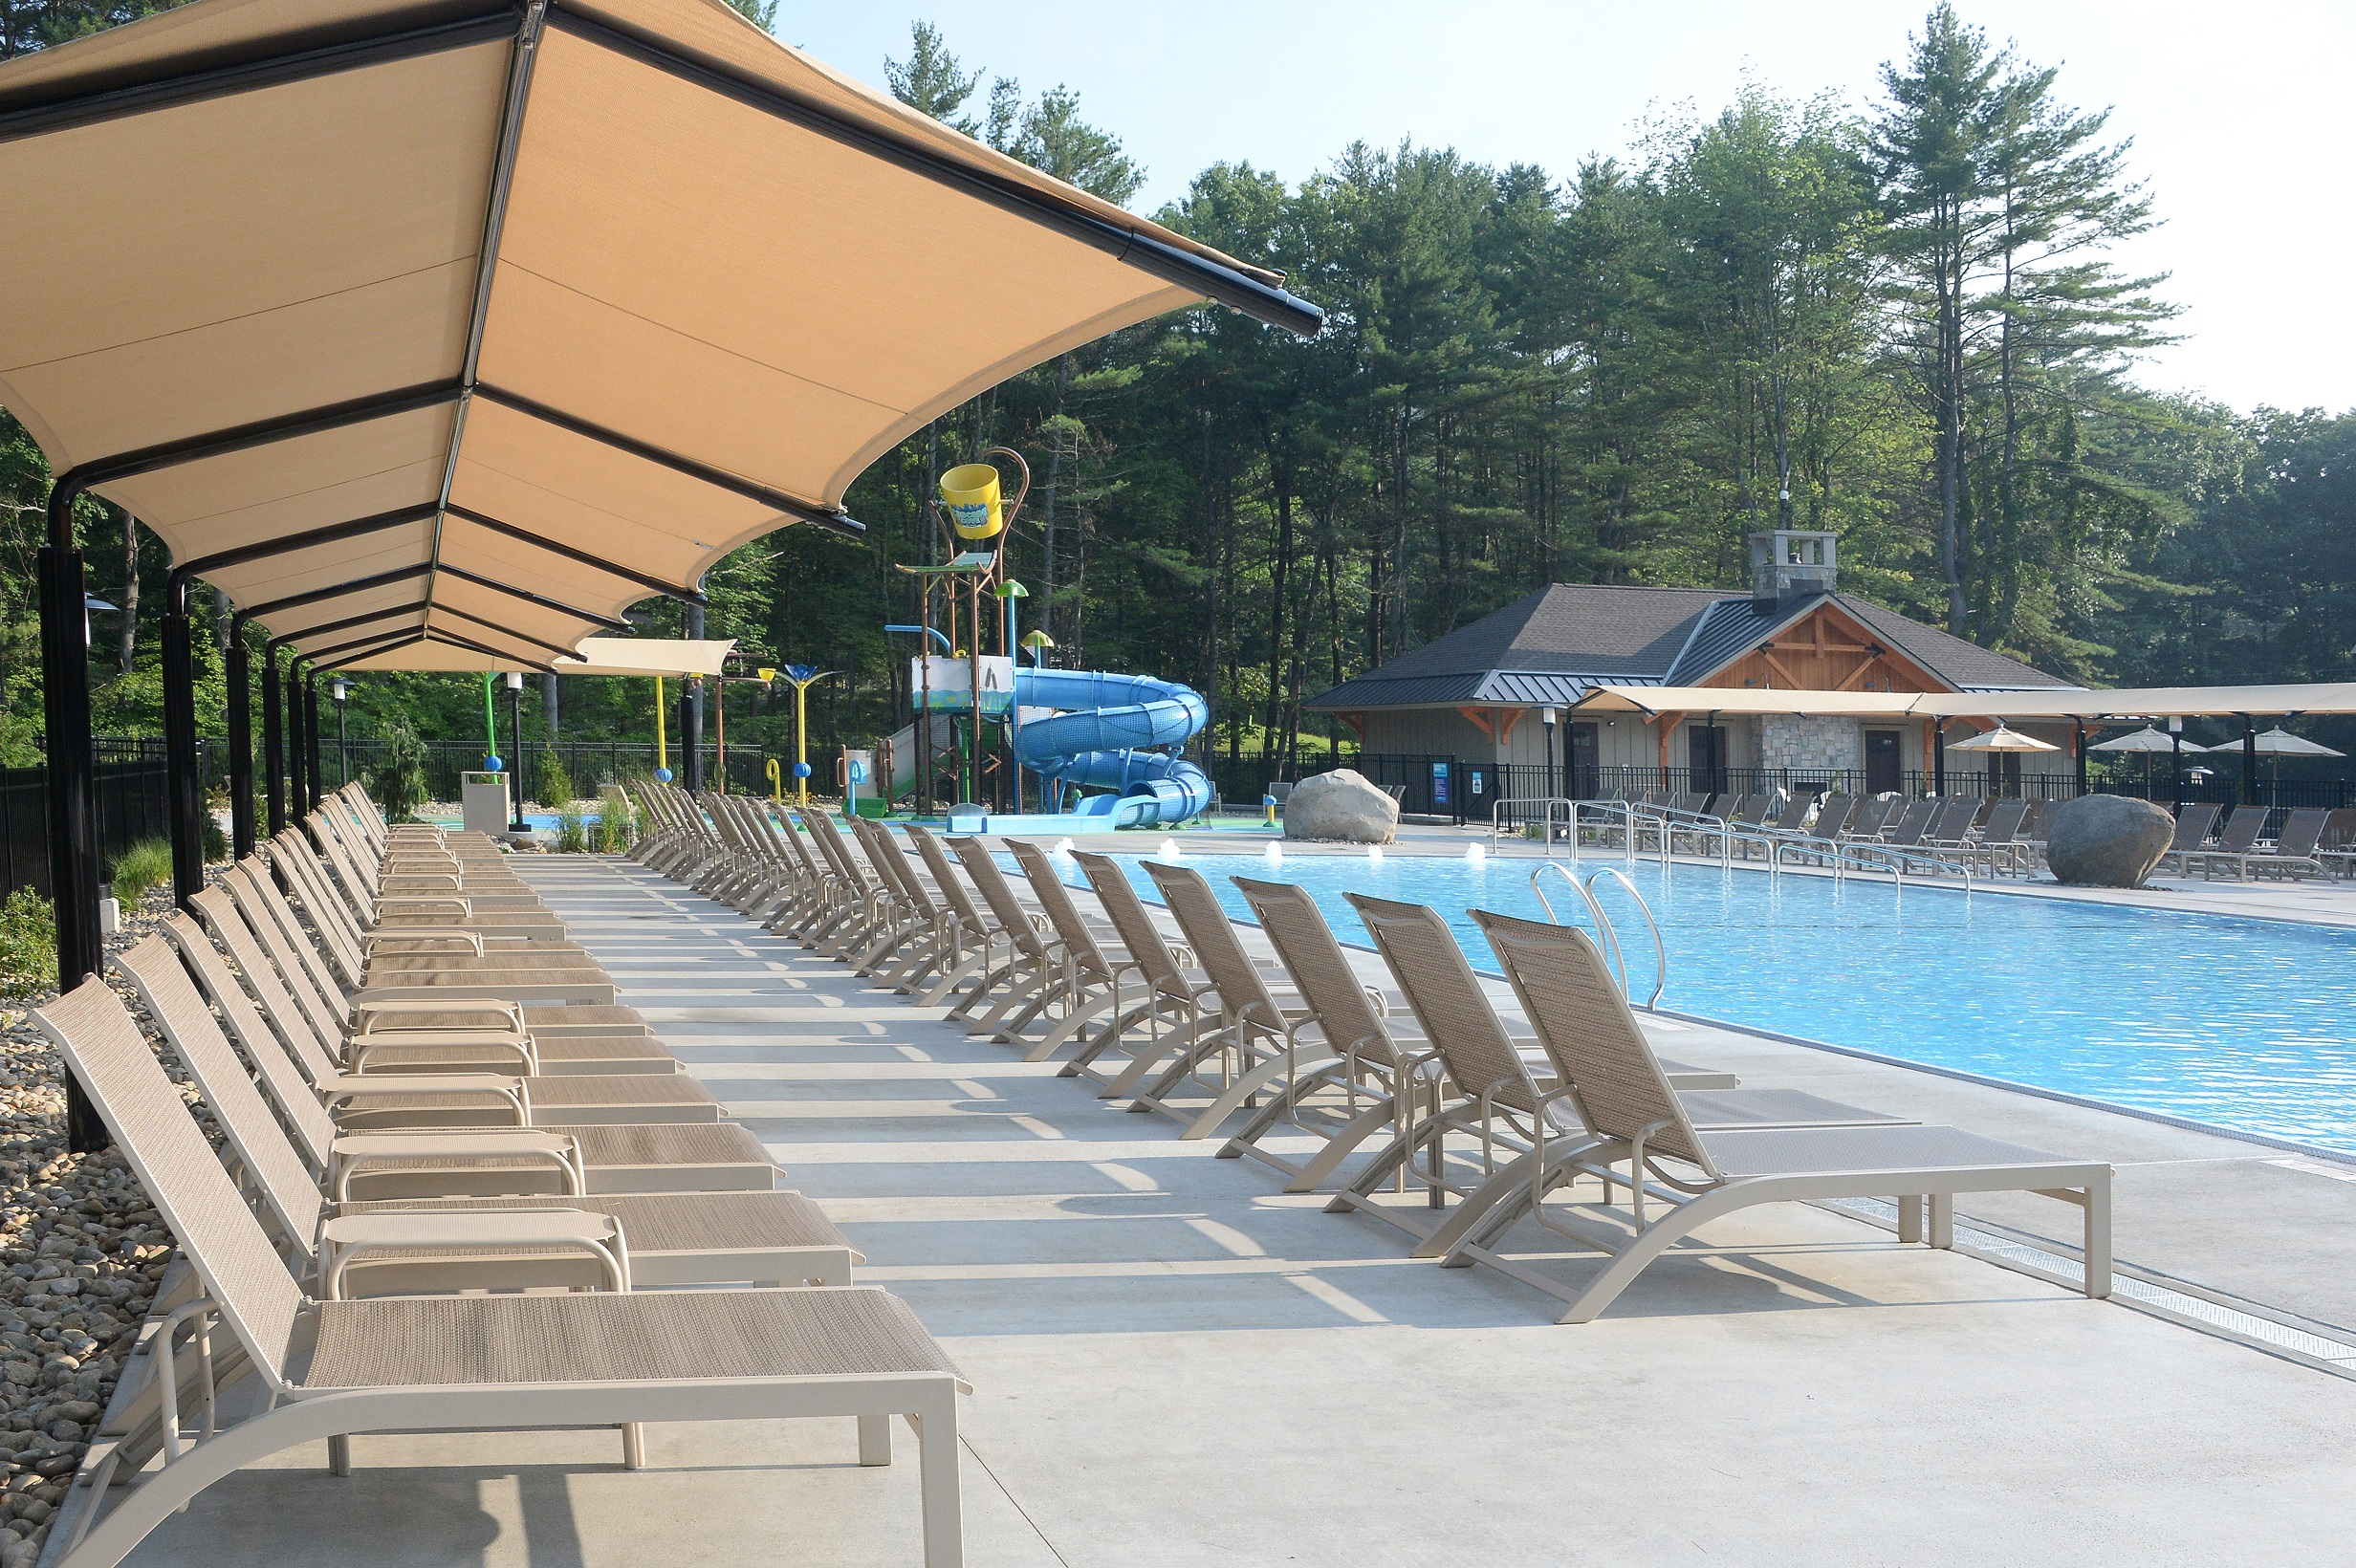 In the foreground the chairs are shown in two rows.  The back row is under a large shade and the front row is out in the sun. In front of the chairs the pool is shown.  In the background of the photo the splashpad area including the slide and dump bucket are shown. In the far right corner the Cascade Cove Bathroom facilities are shown.